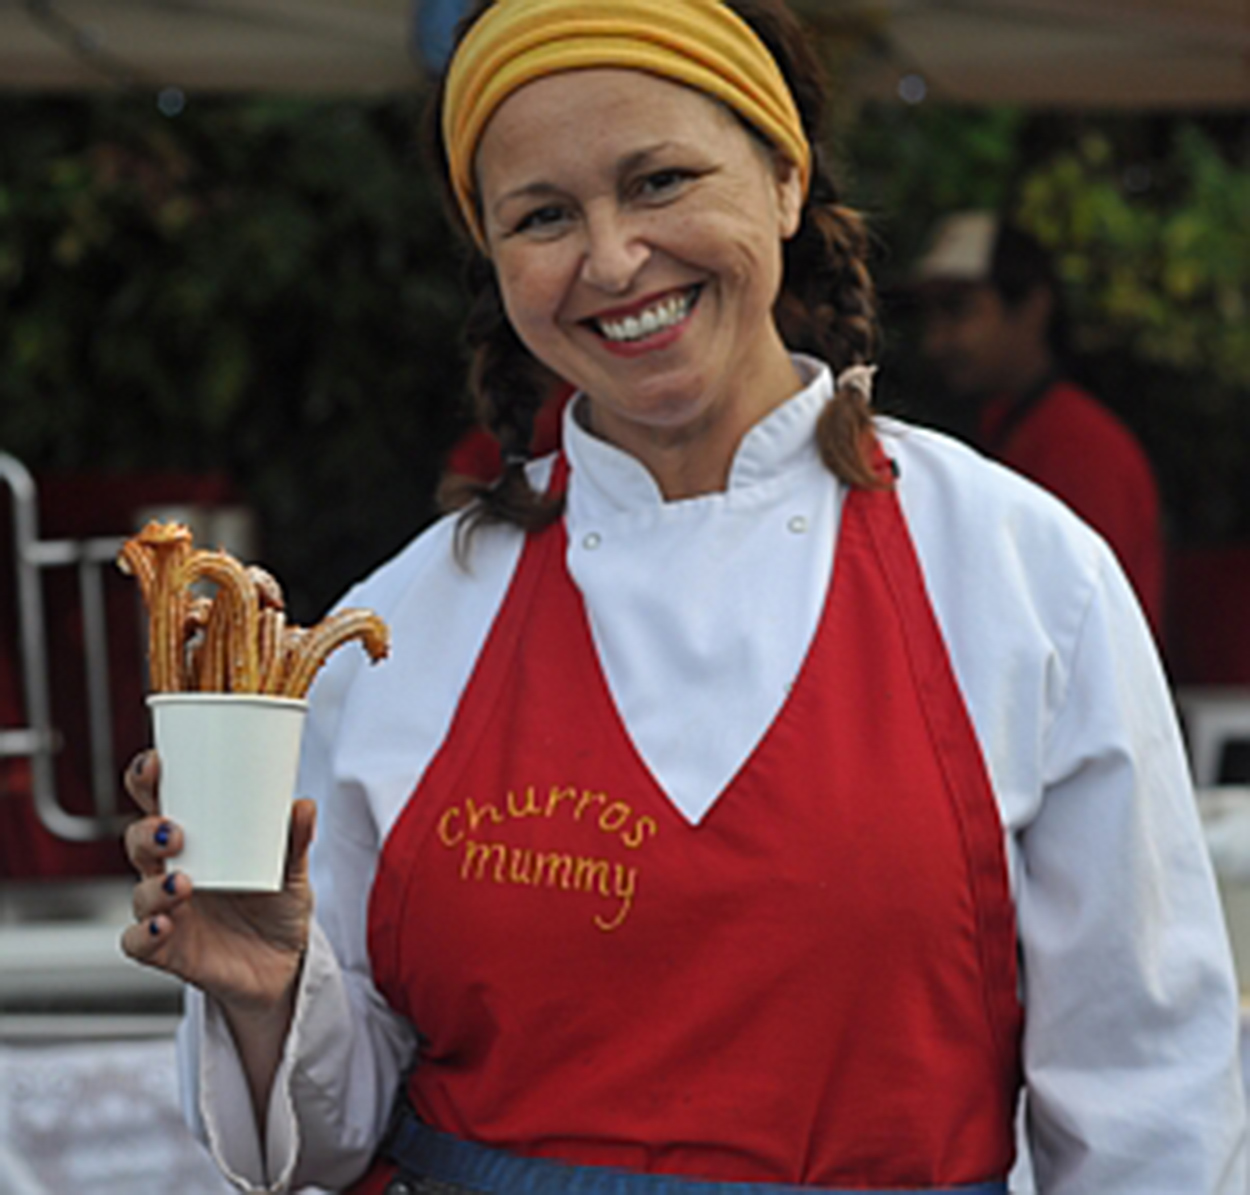 The Churros Mummy